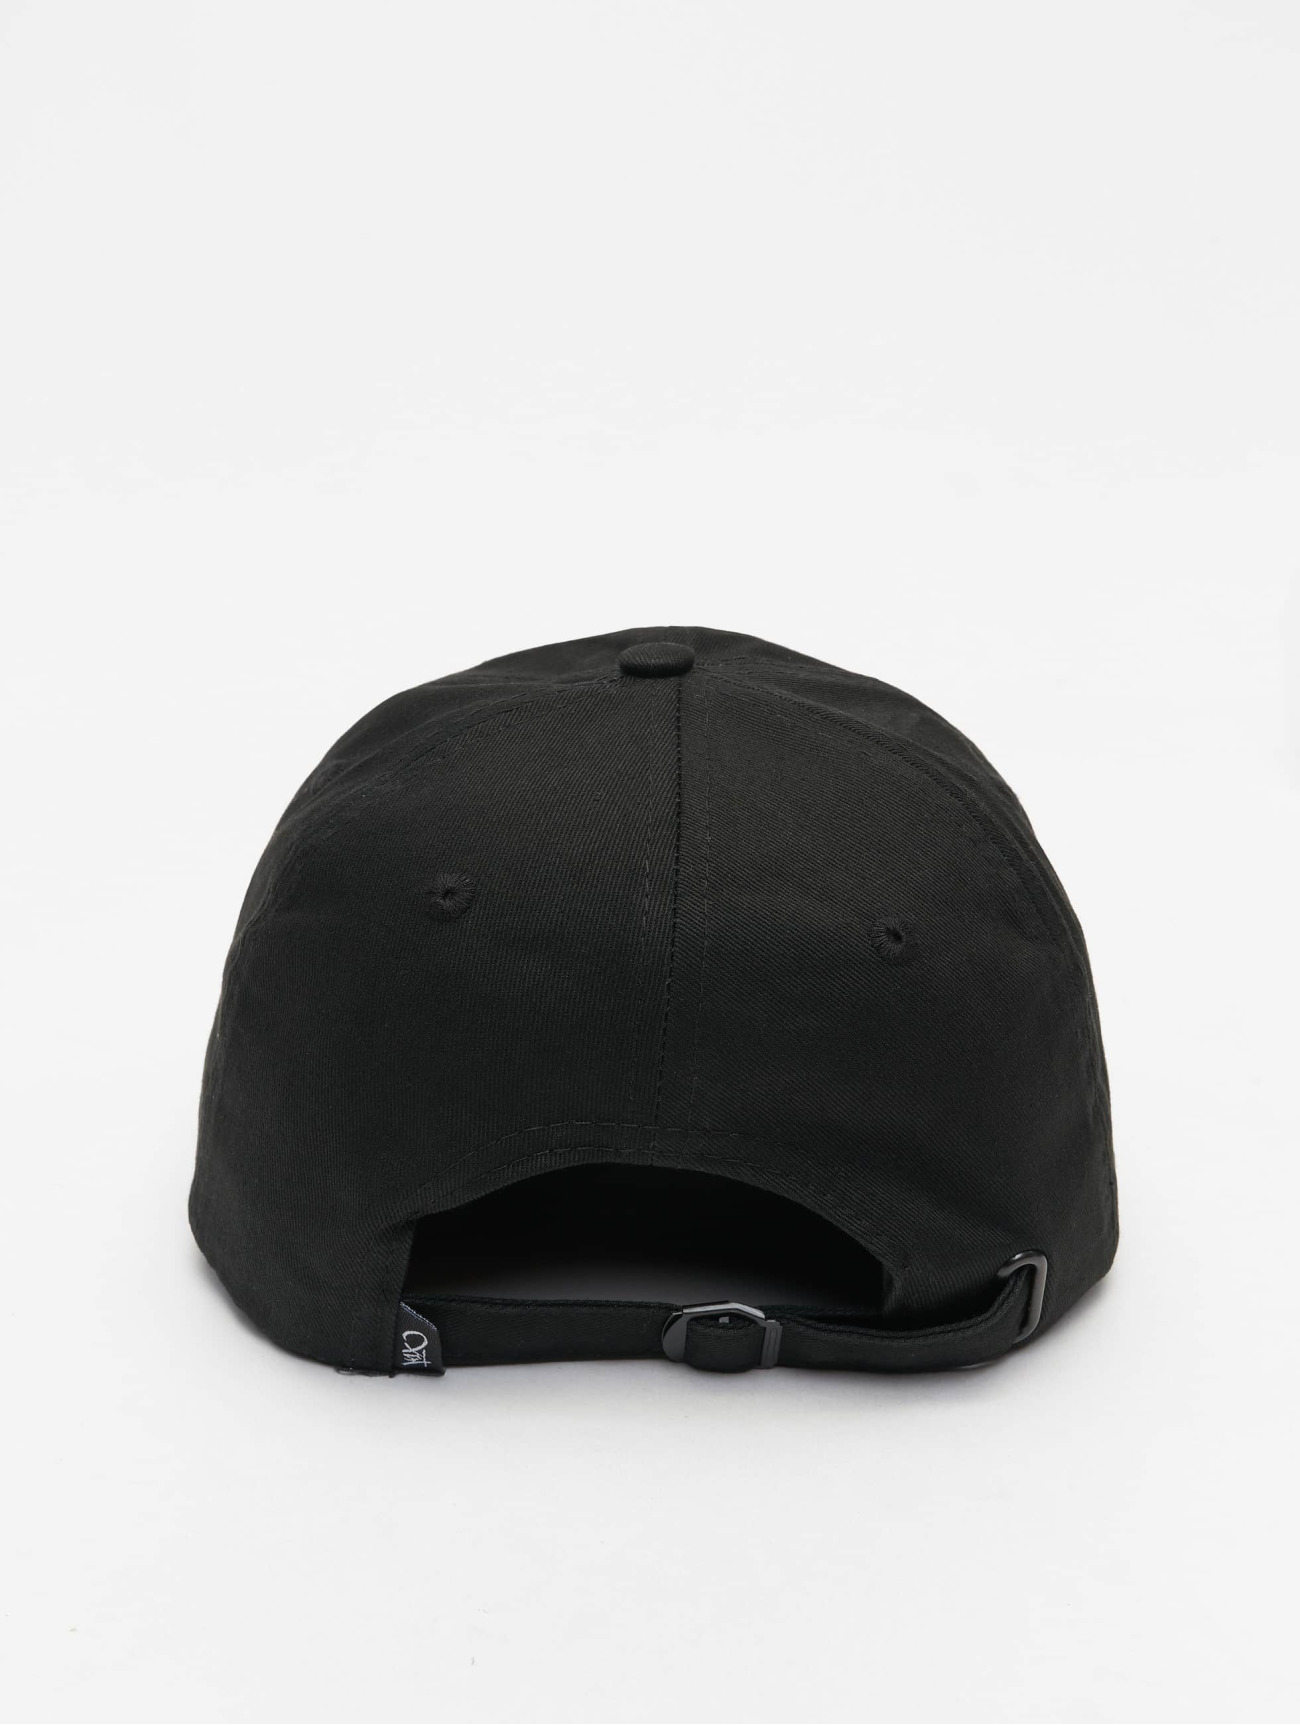 K1X  I Ball NY Sports  noir  Casquette Snapback & Strapback  429248 Homme Casquettes